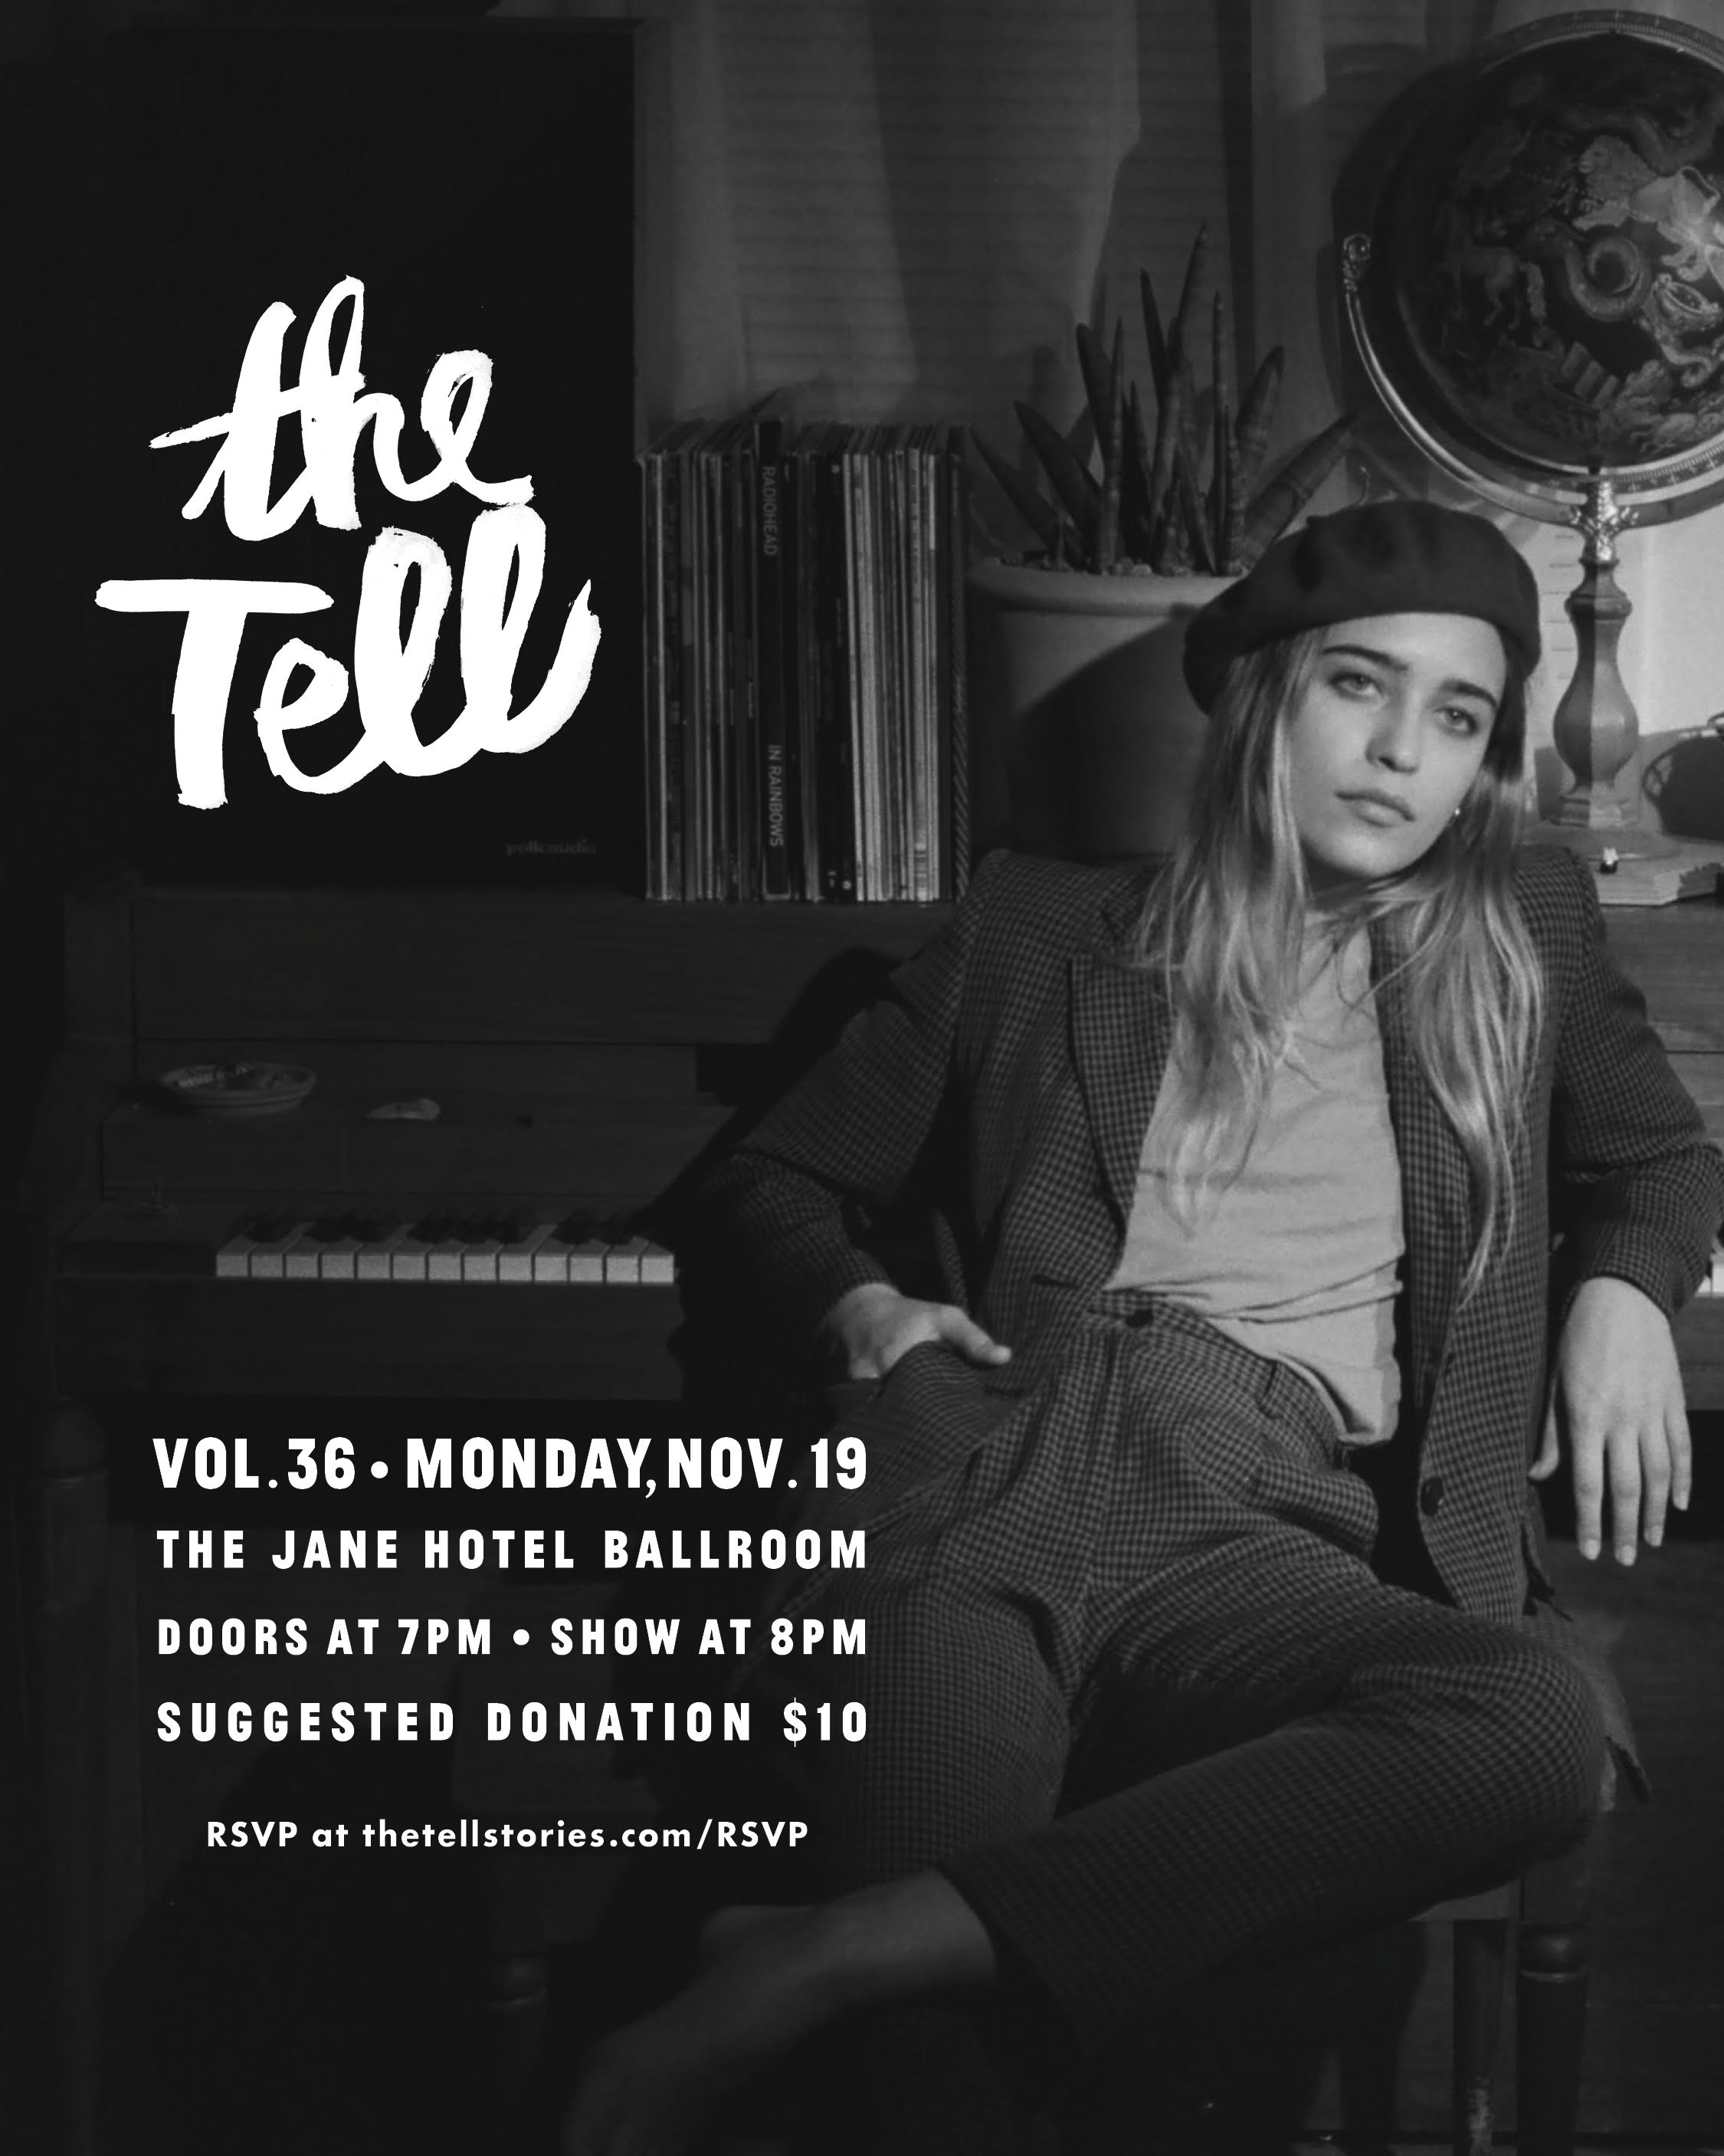 Tell Poster Nov. revised.jpg